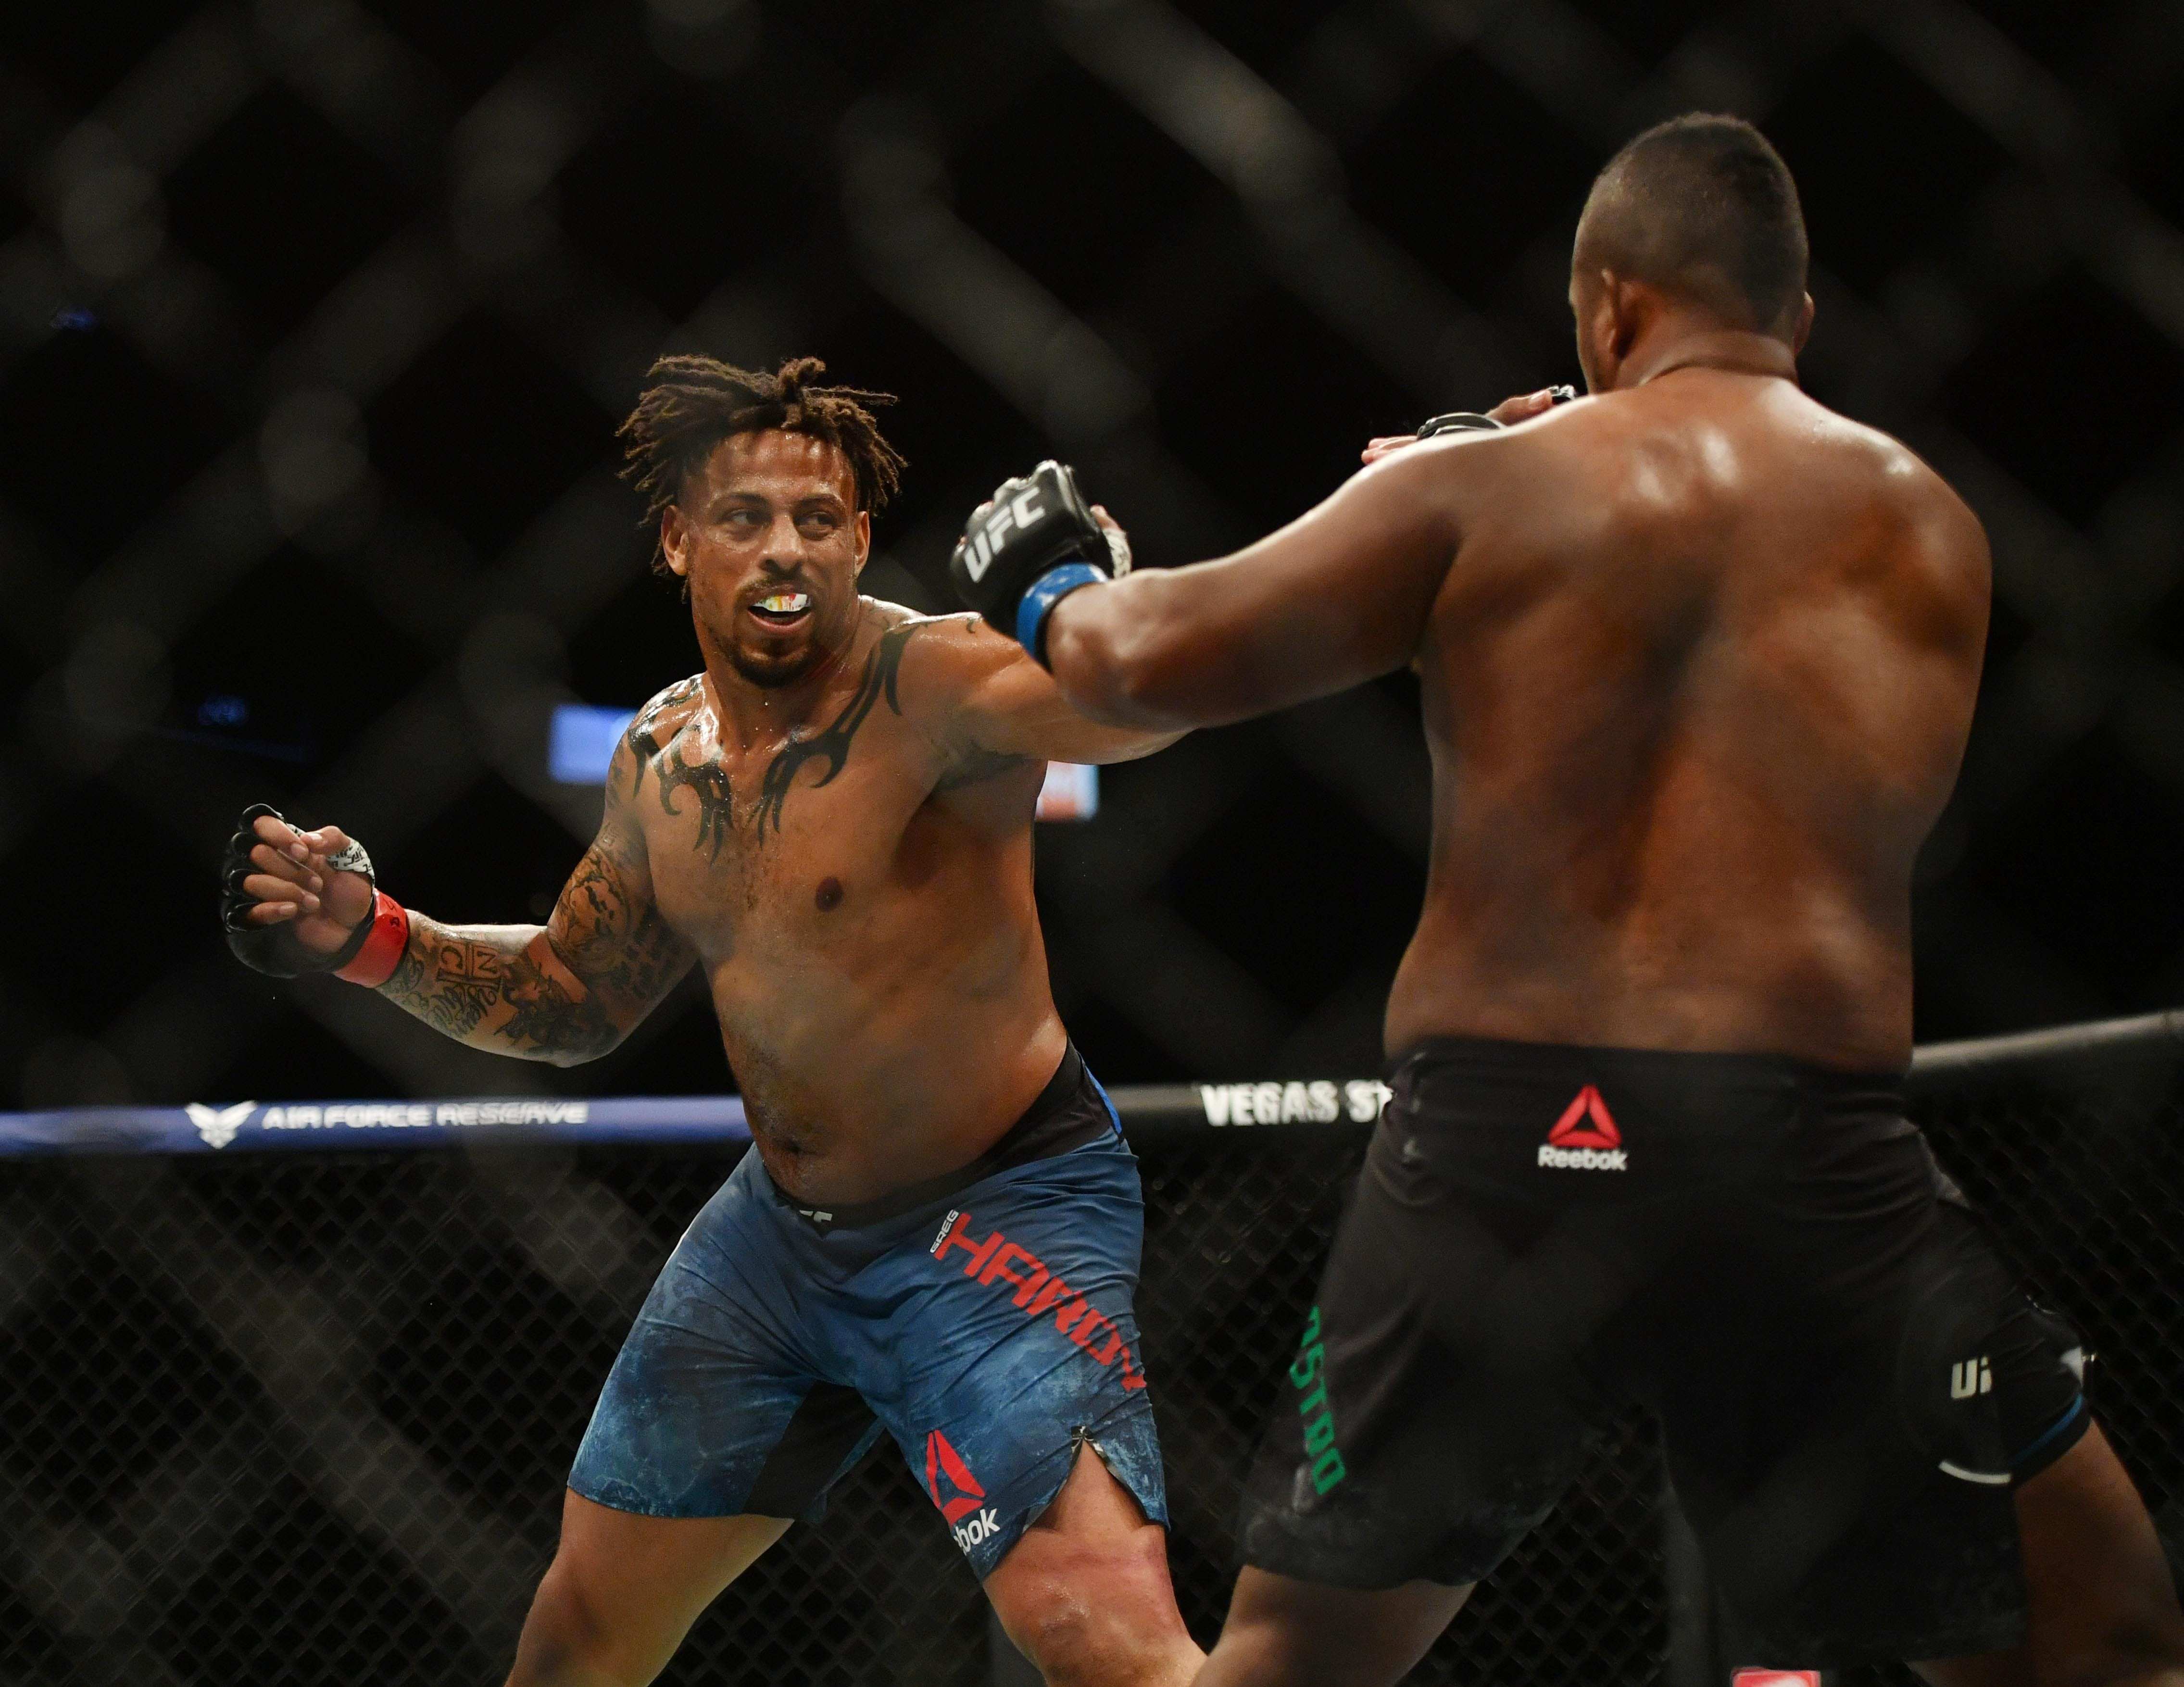 Former NFL player scores another UFC victory